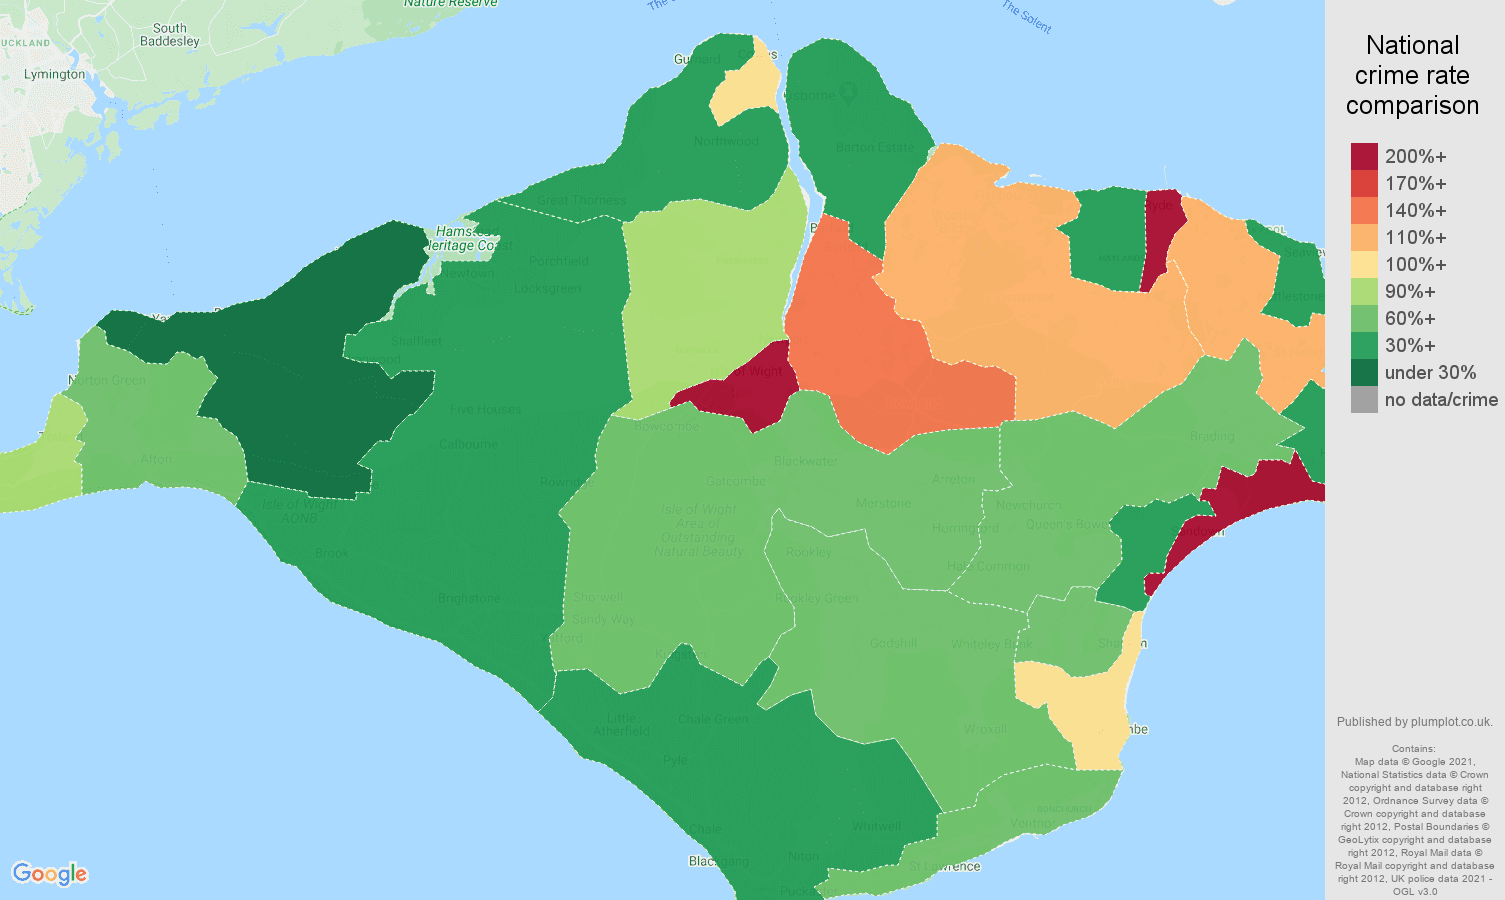 Isle of Wight drugs crime rate comparison map